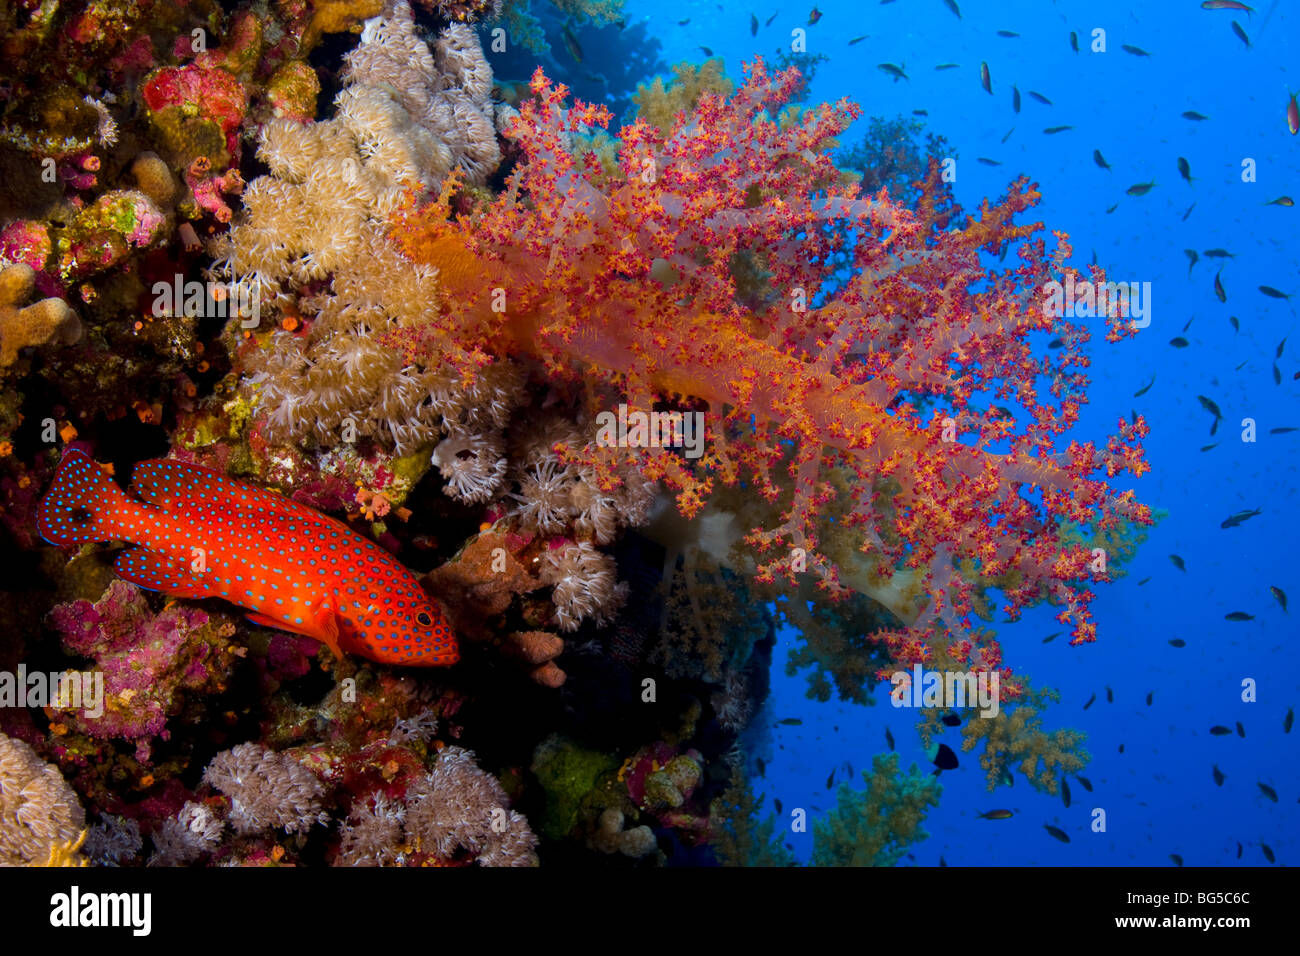 Colorful Reefscape With Fish Stock Photos & Colorful Reefscape With ...